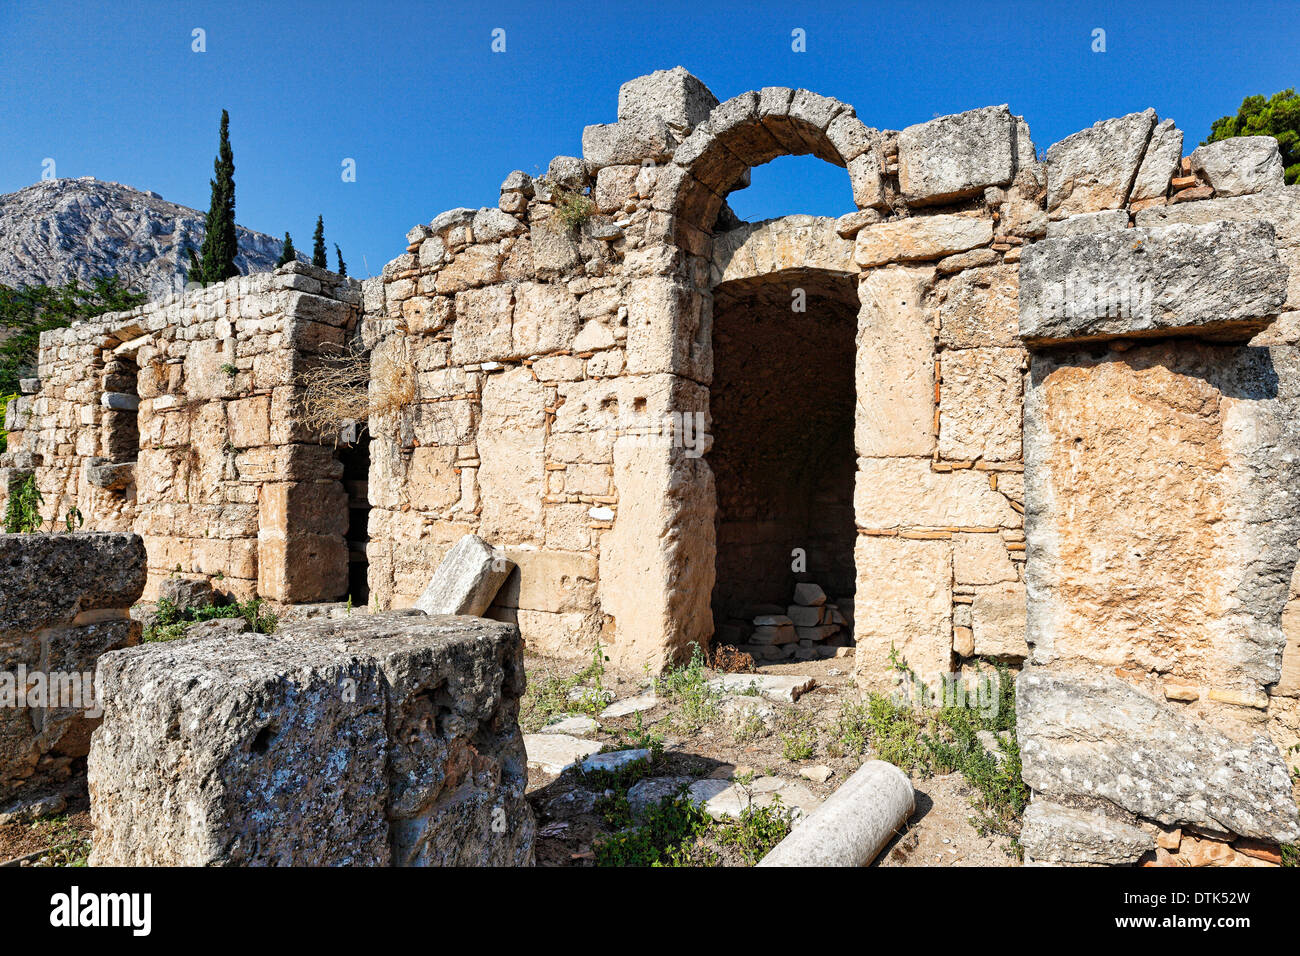 West Shops in Ancient Corinth, Greece - Stock Image